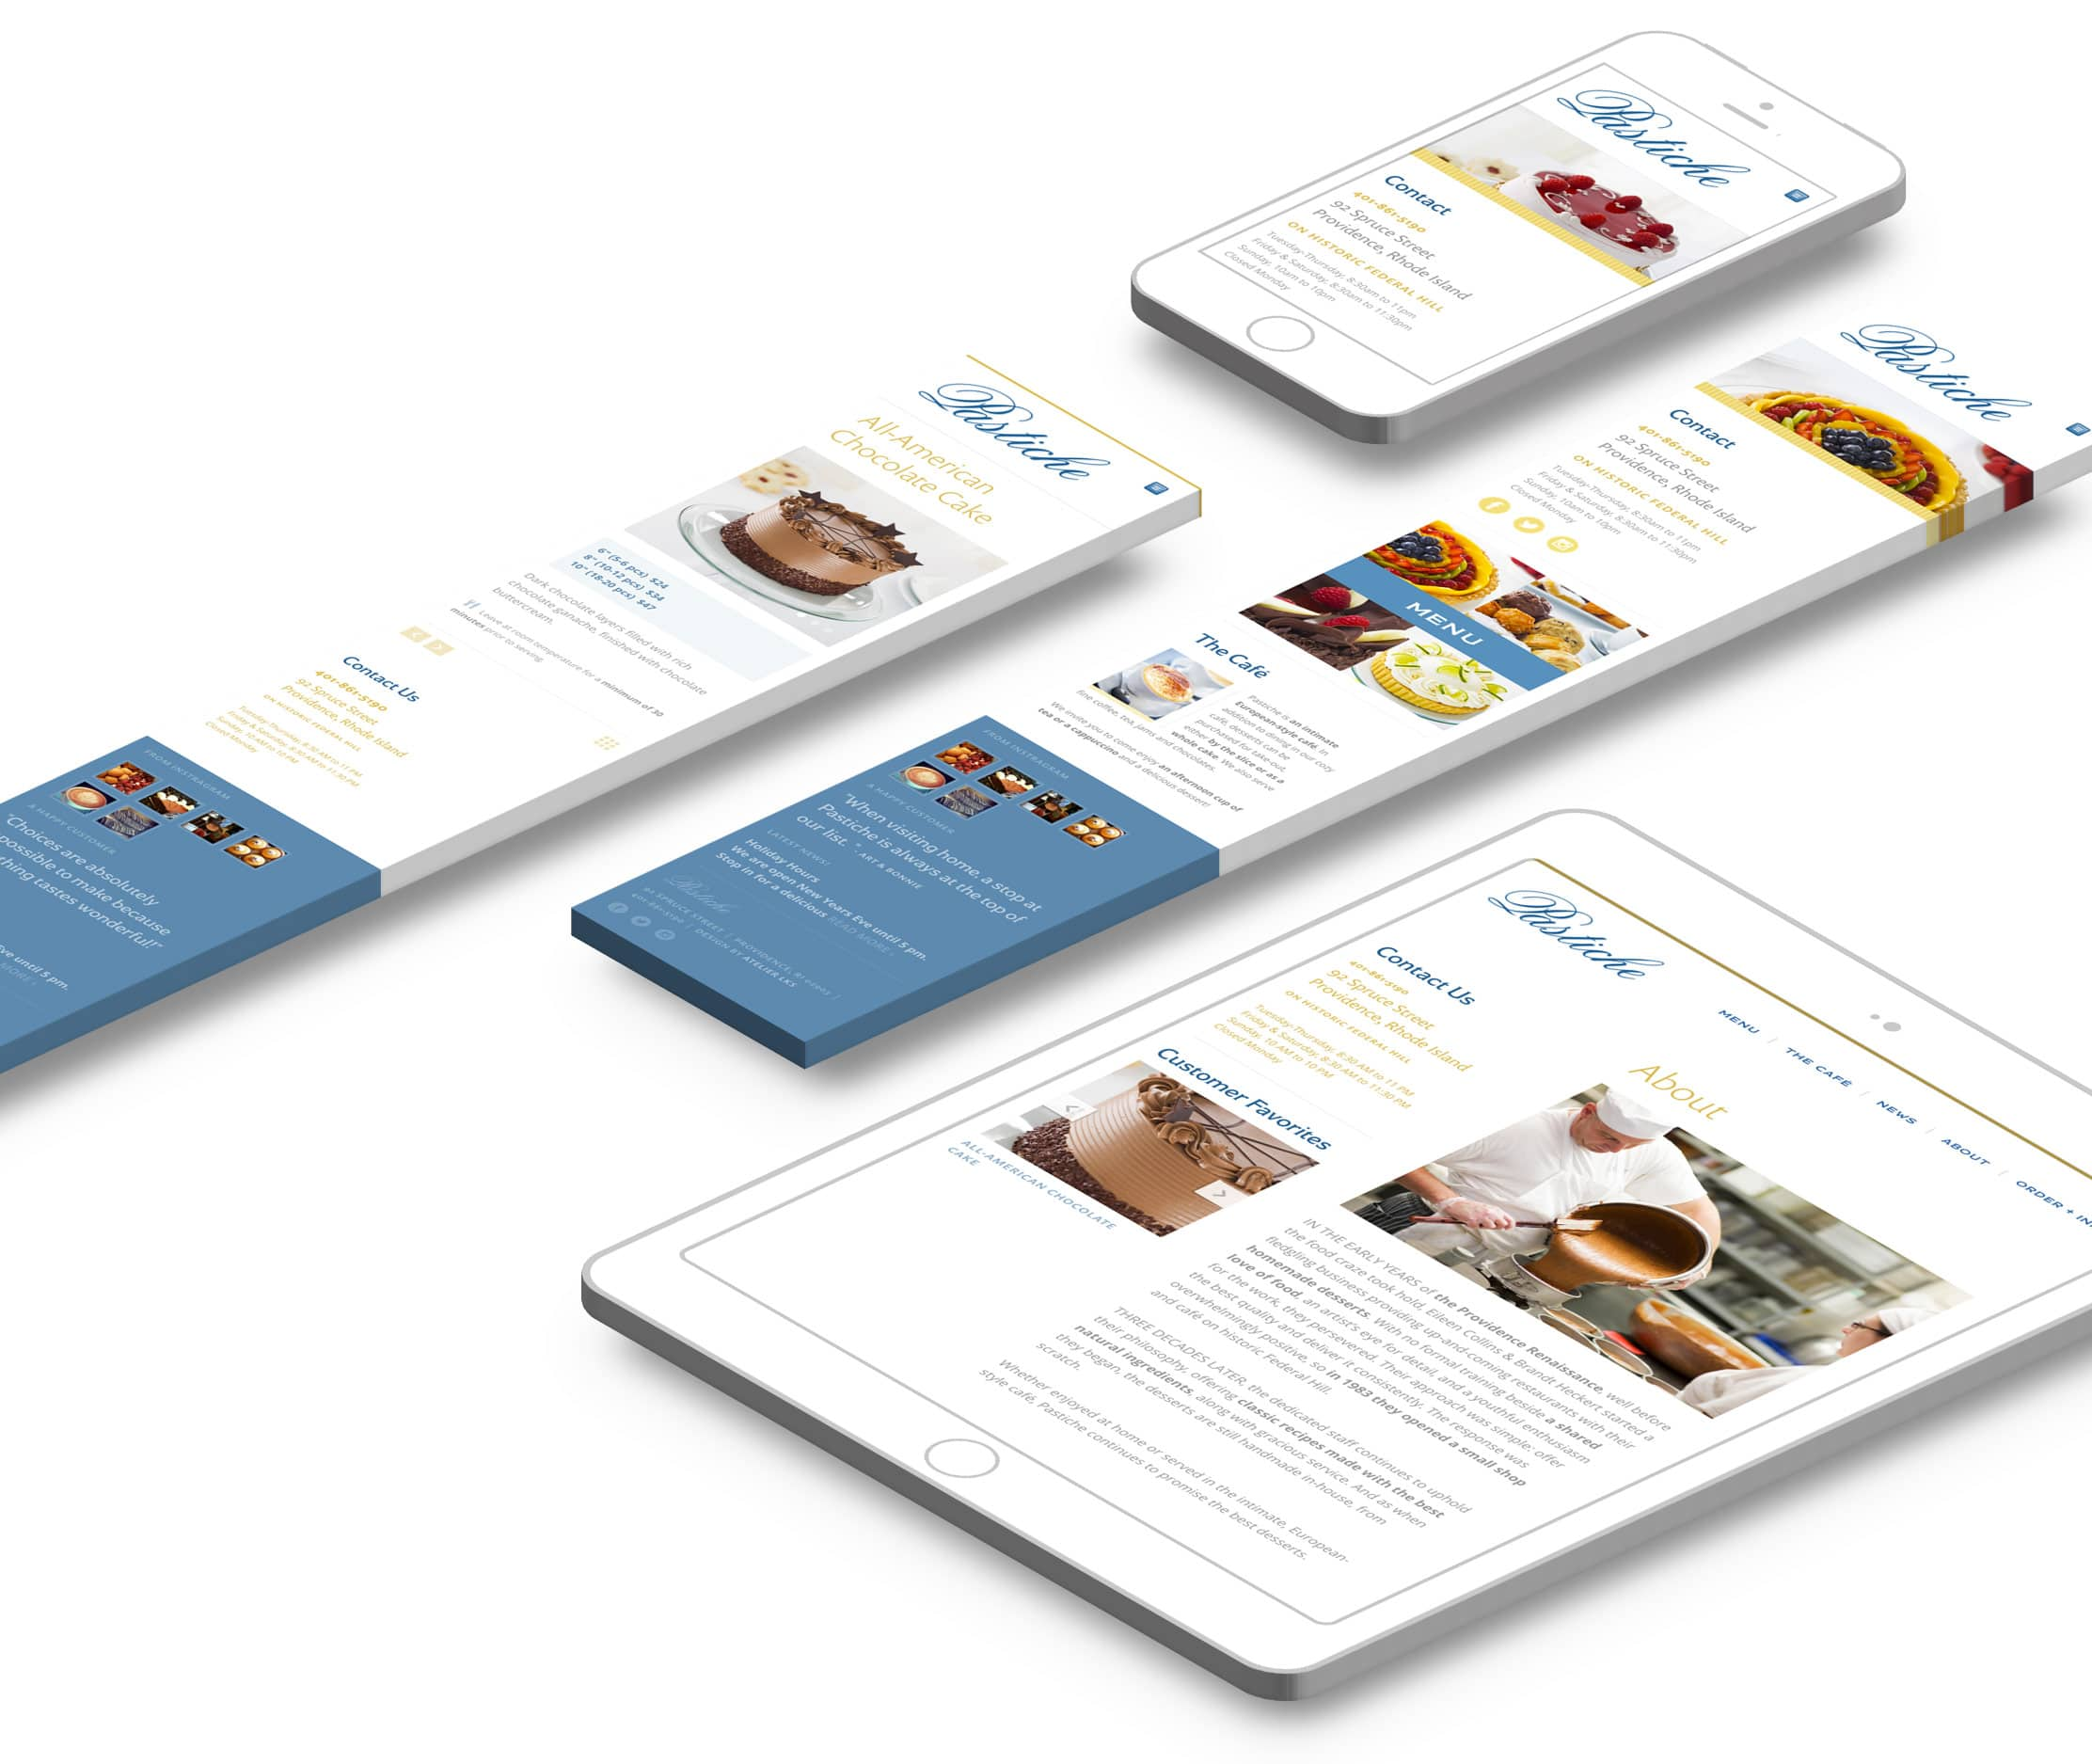 mobile responsive web design for phones and tablets